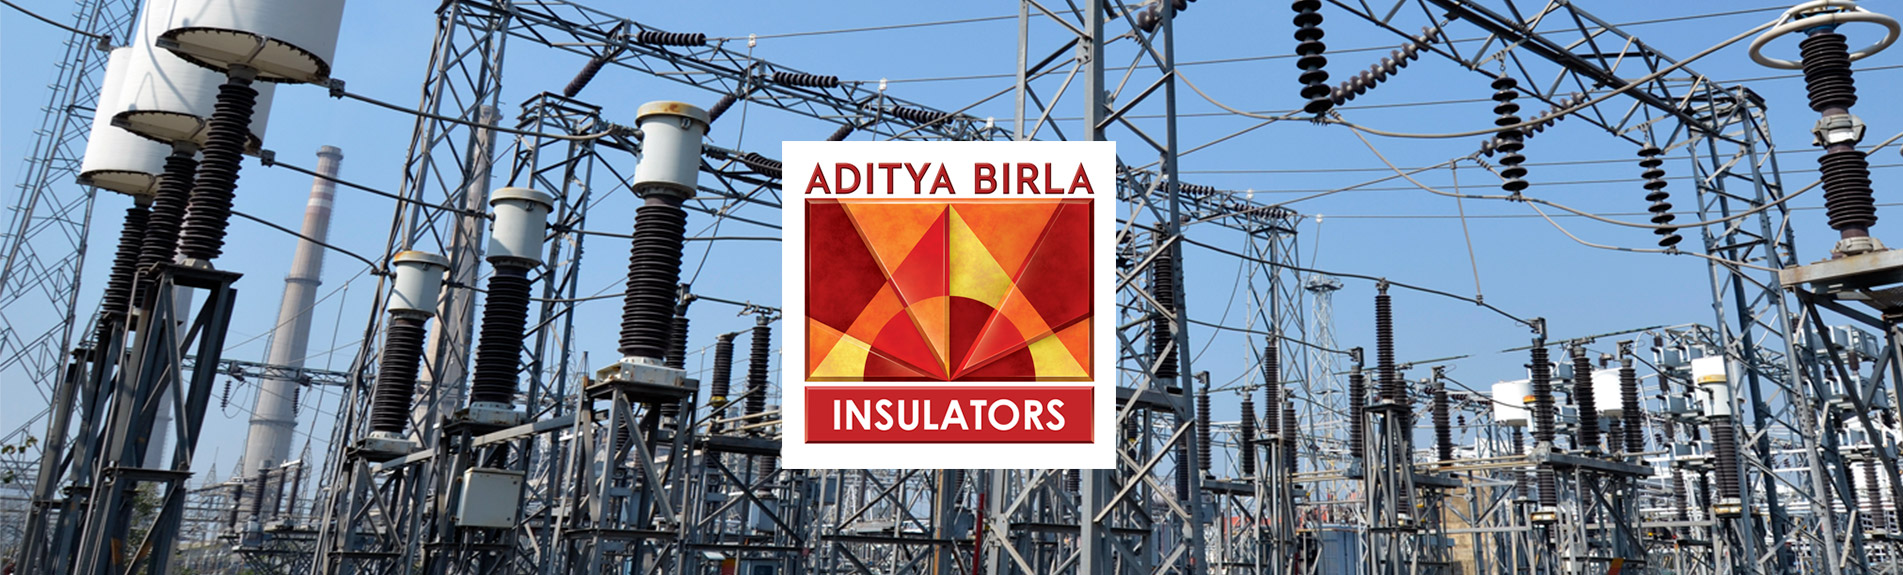 aditya birla group global vision indian values Case study aditya birla group global vision indian values about aditya birla retail ltd aditya birla retail ltd is the retail arm of the aditya birla group, a us$ 24 billion corporation with a market capital of us$ 315 billion and in the league of fortune 500 companies.